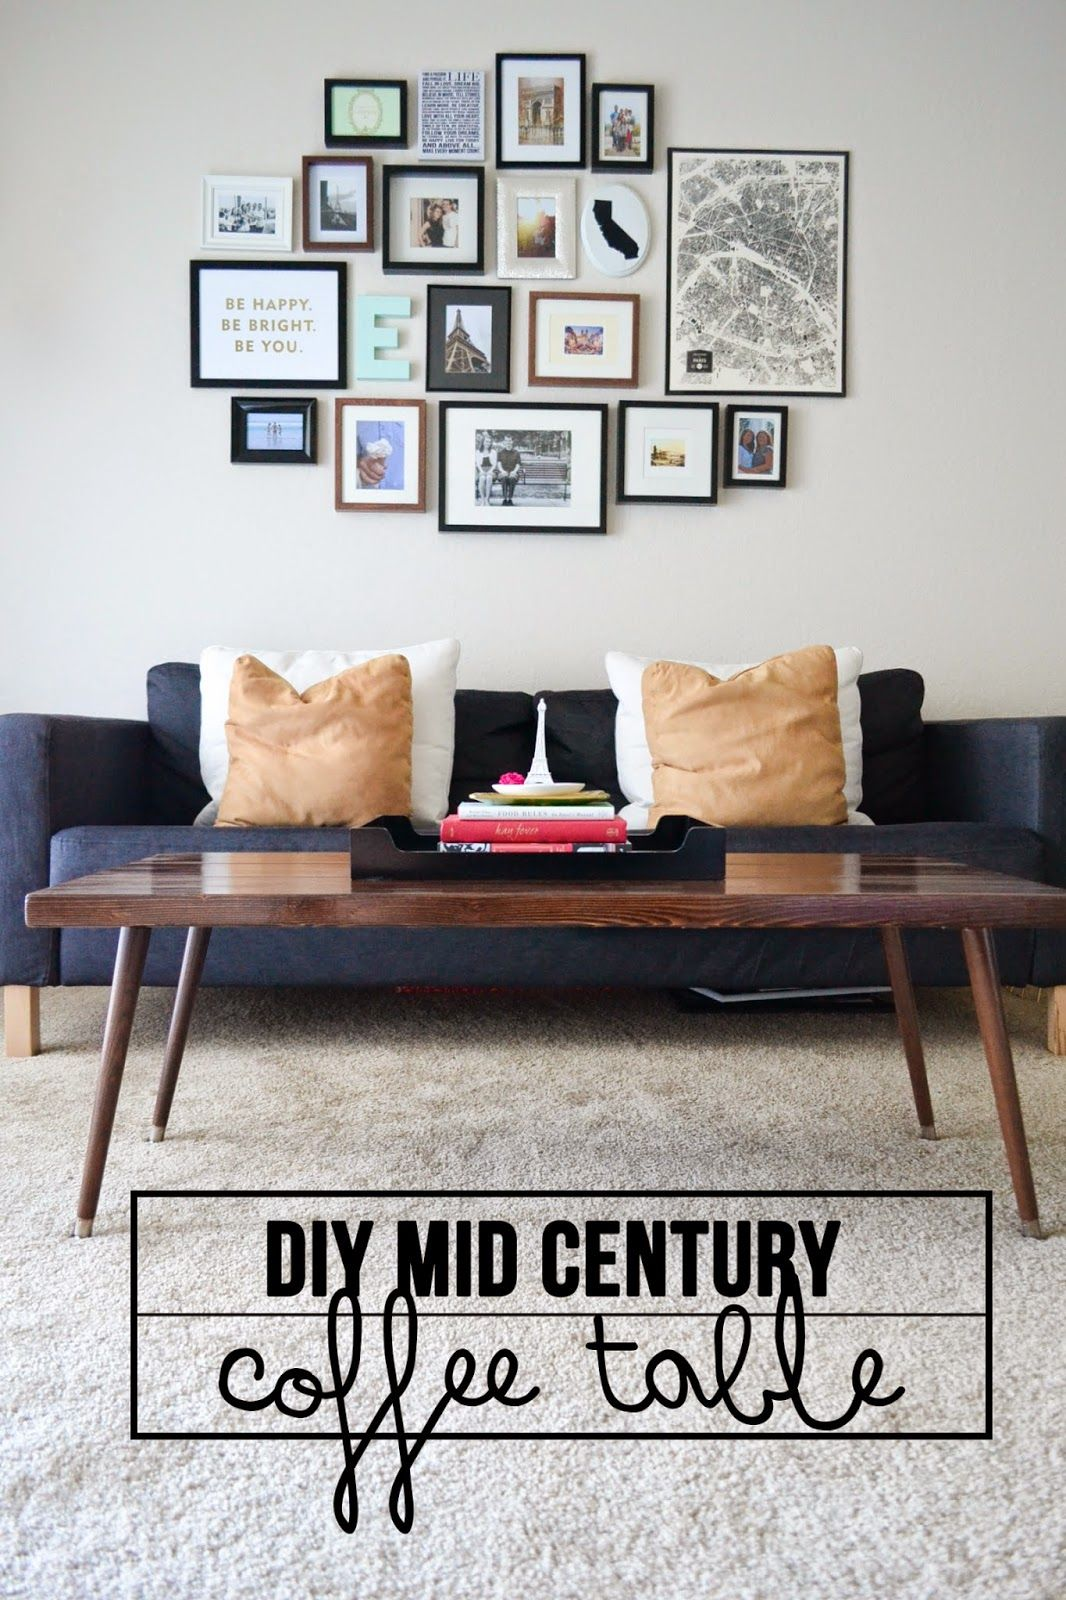 Diy Mid Century Coffee Table Mid Century Interior Design